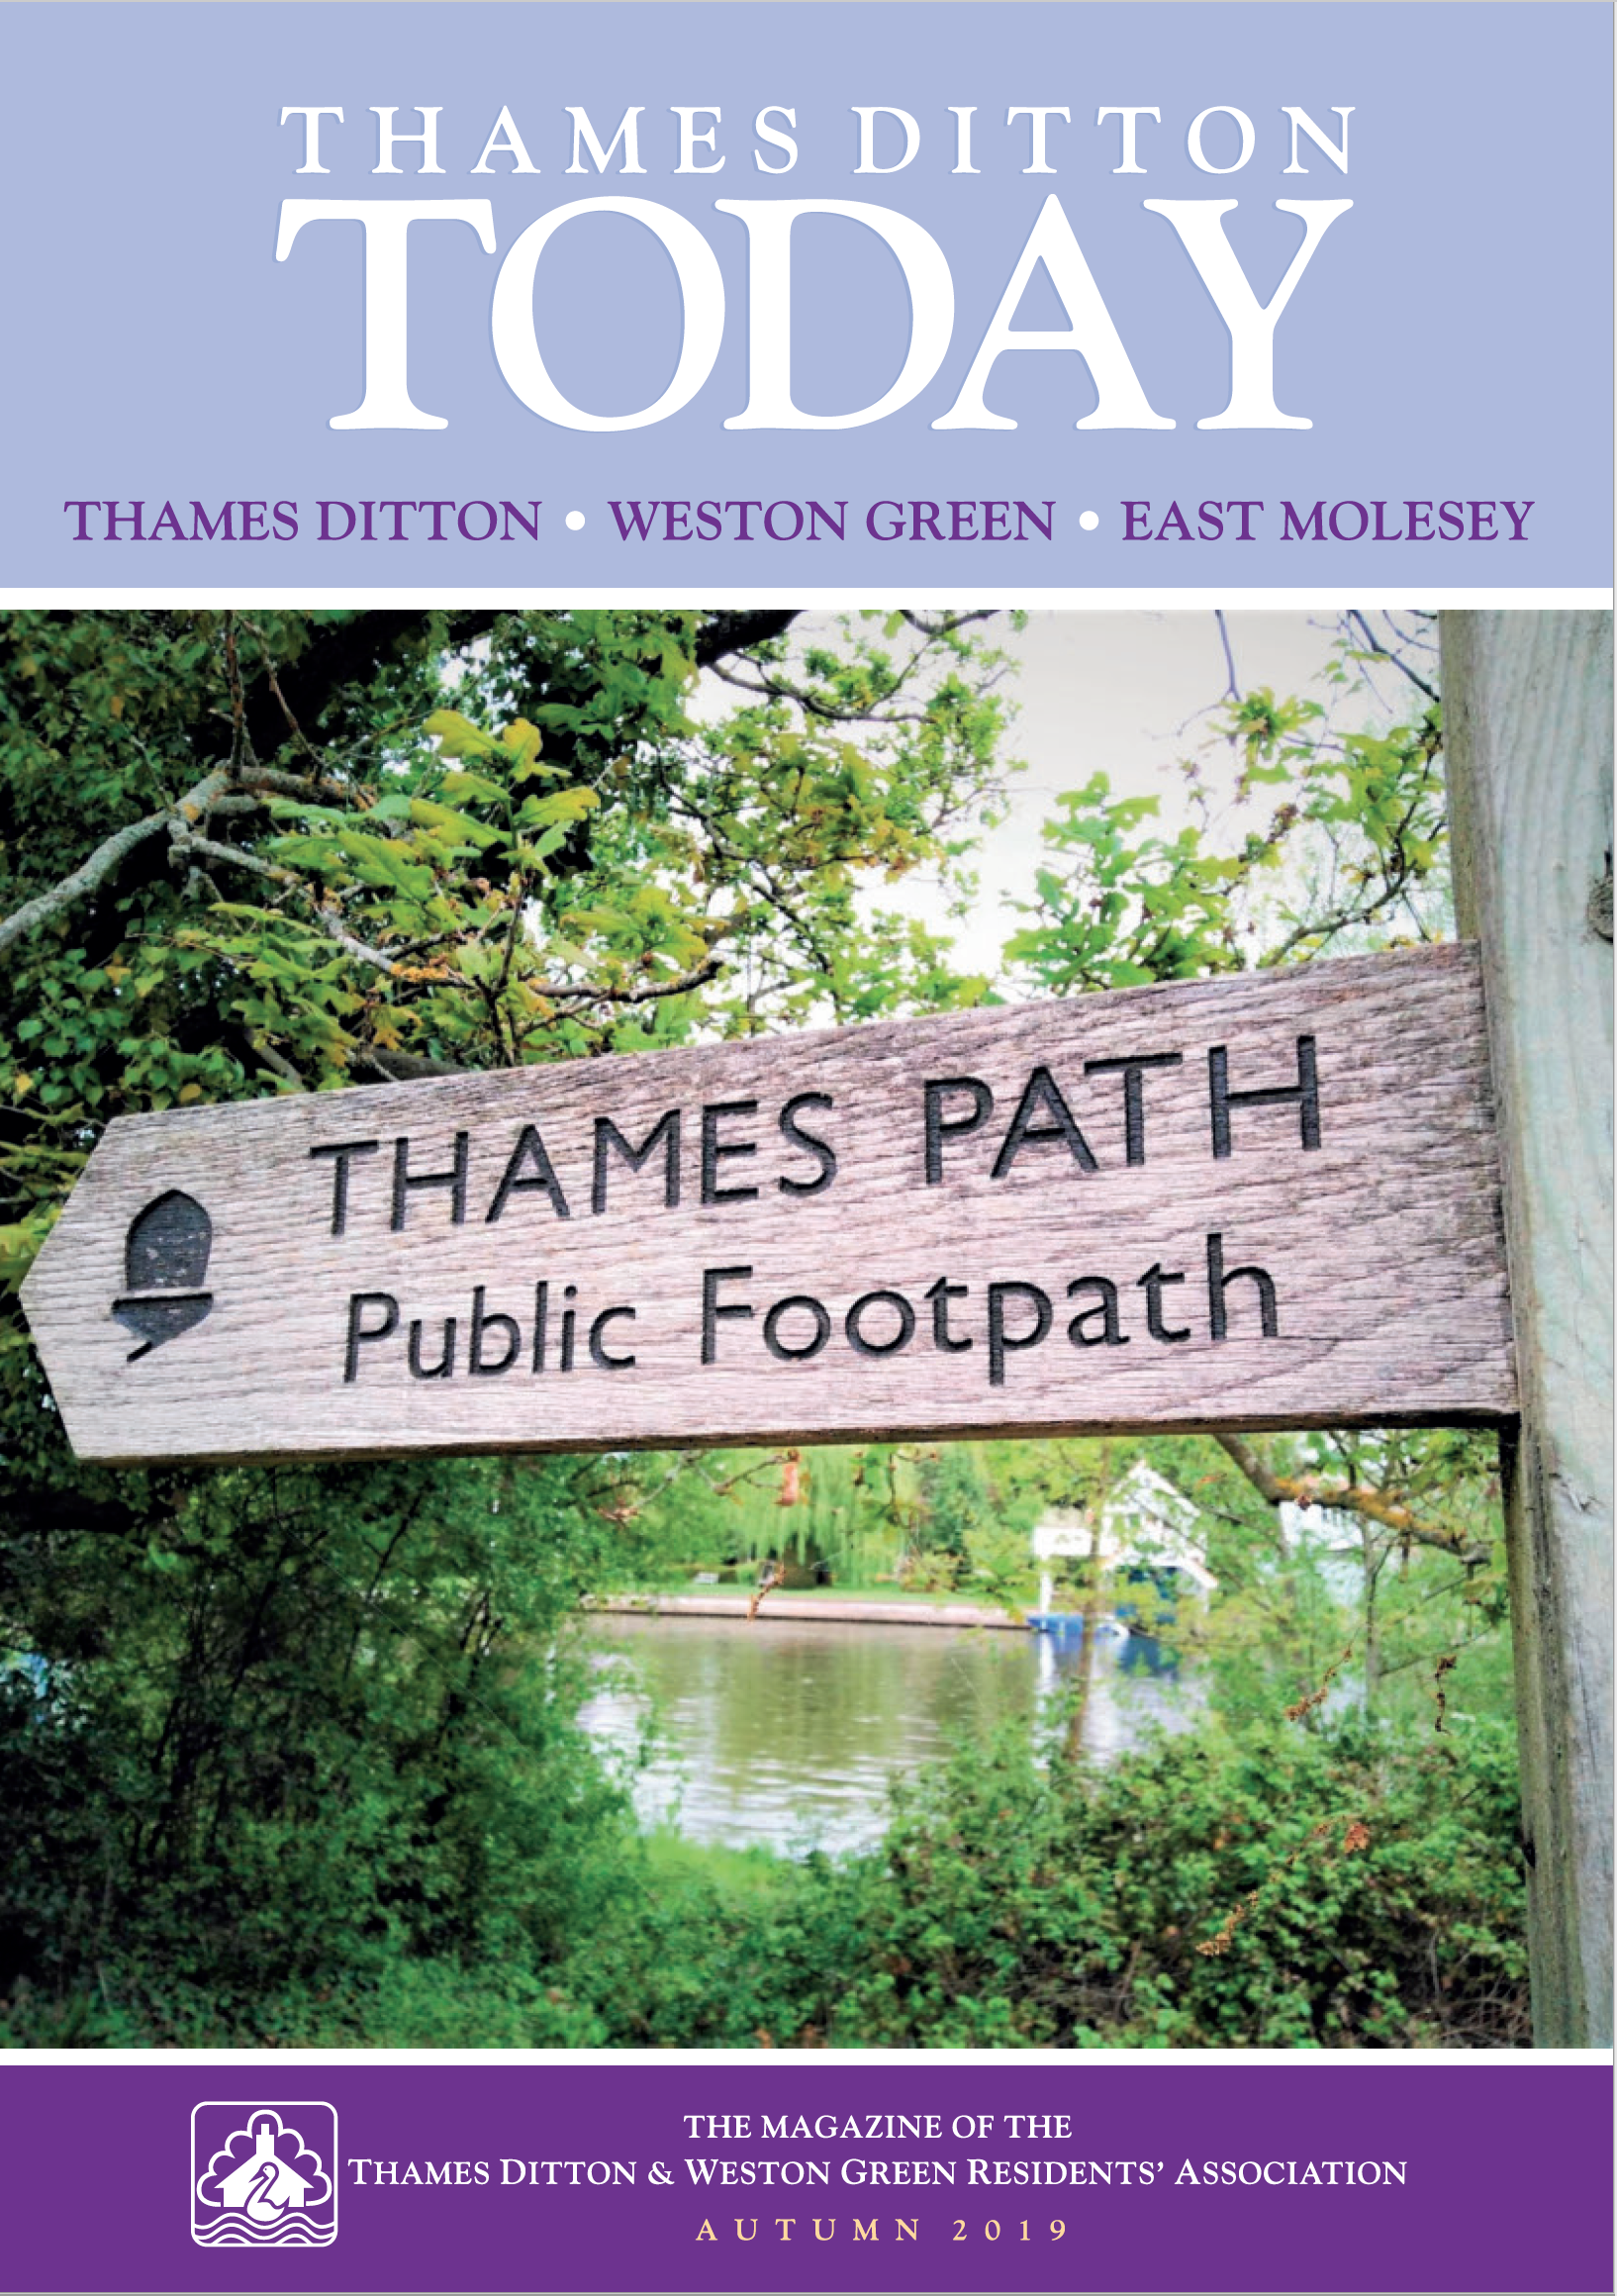 Thames Ditton Today: Summer 2019 issue available online